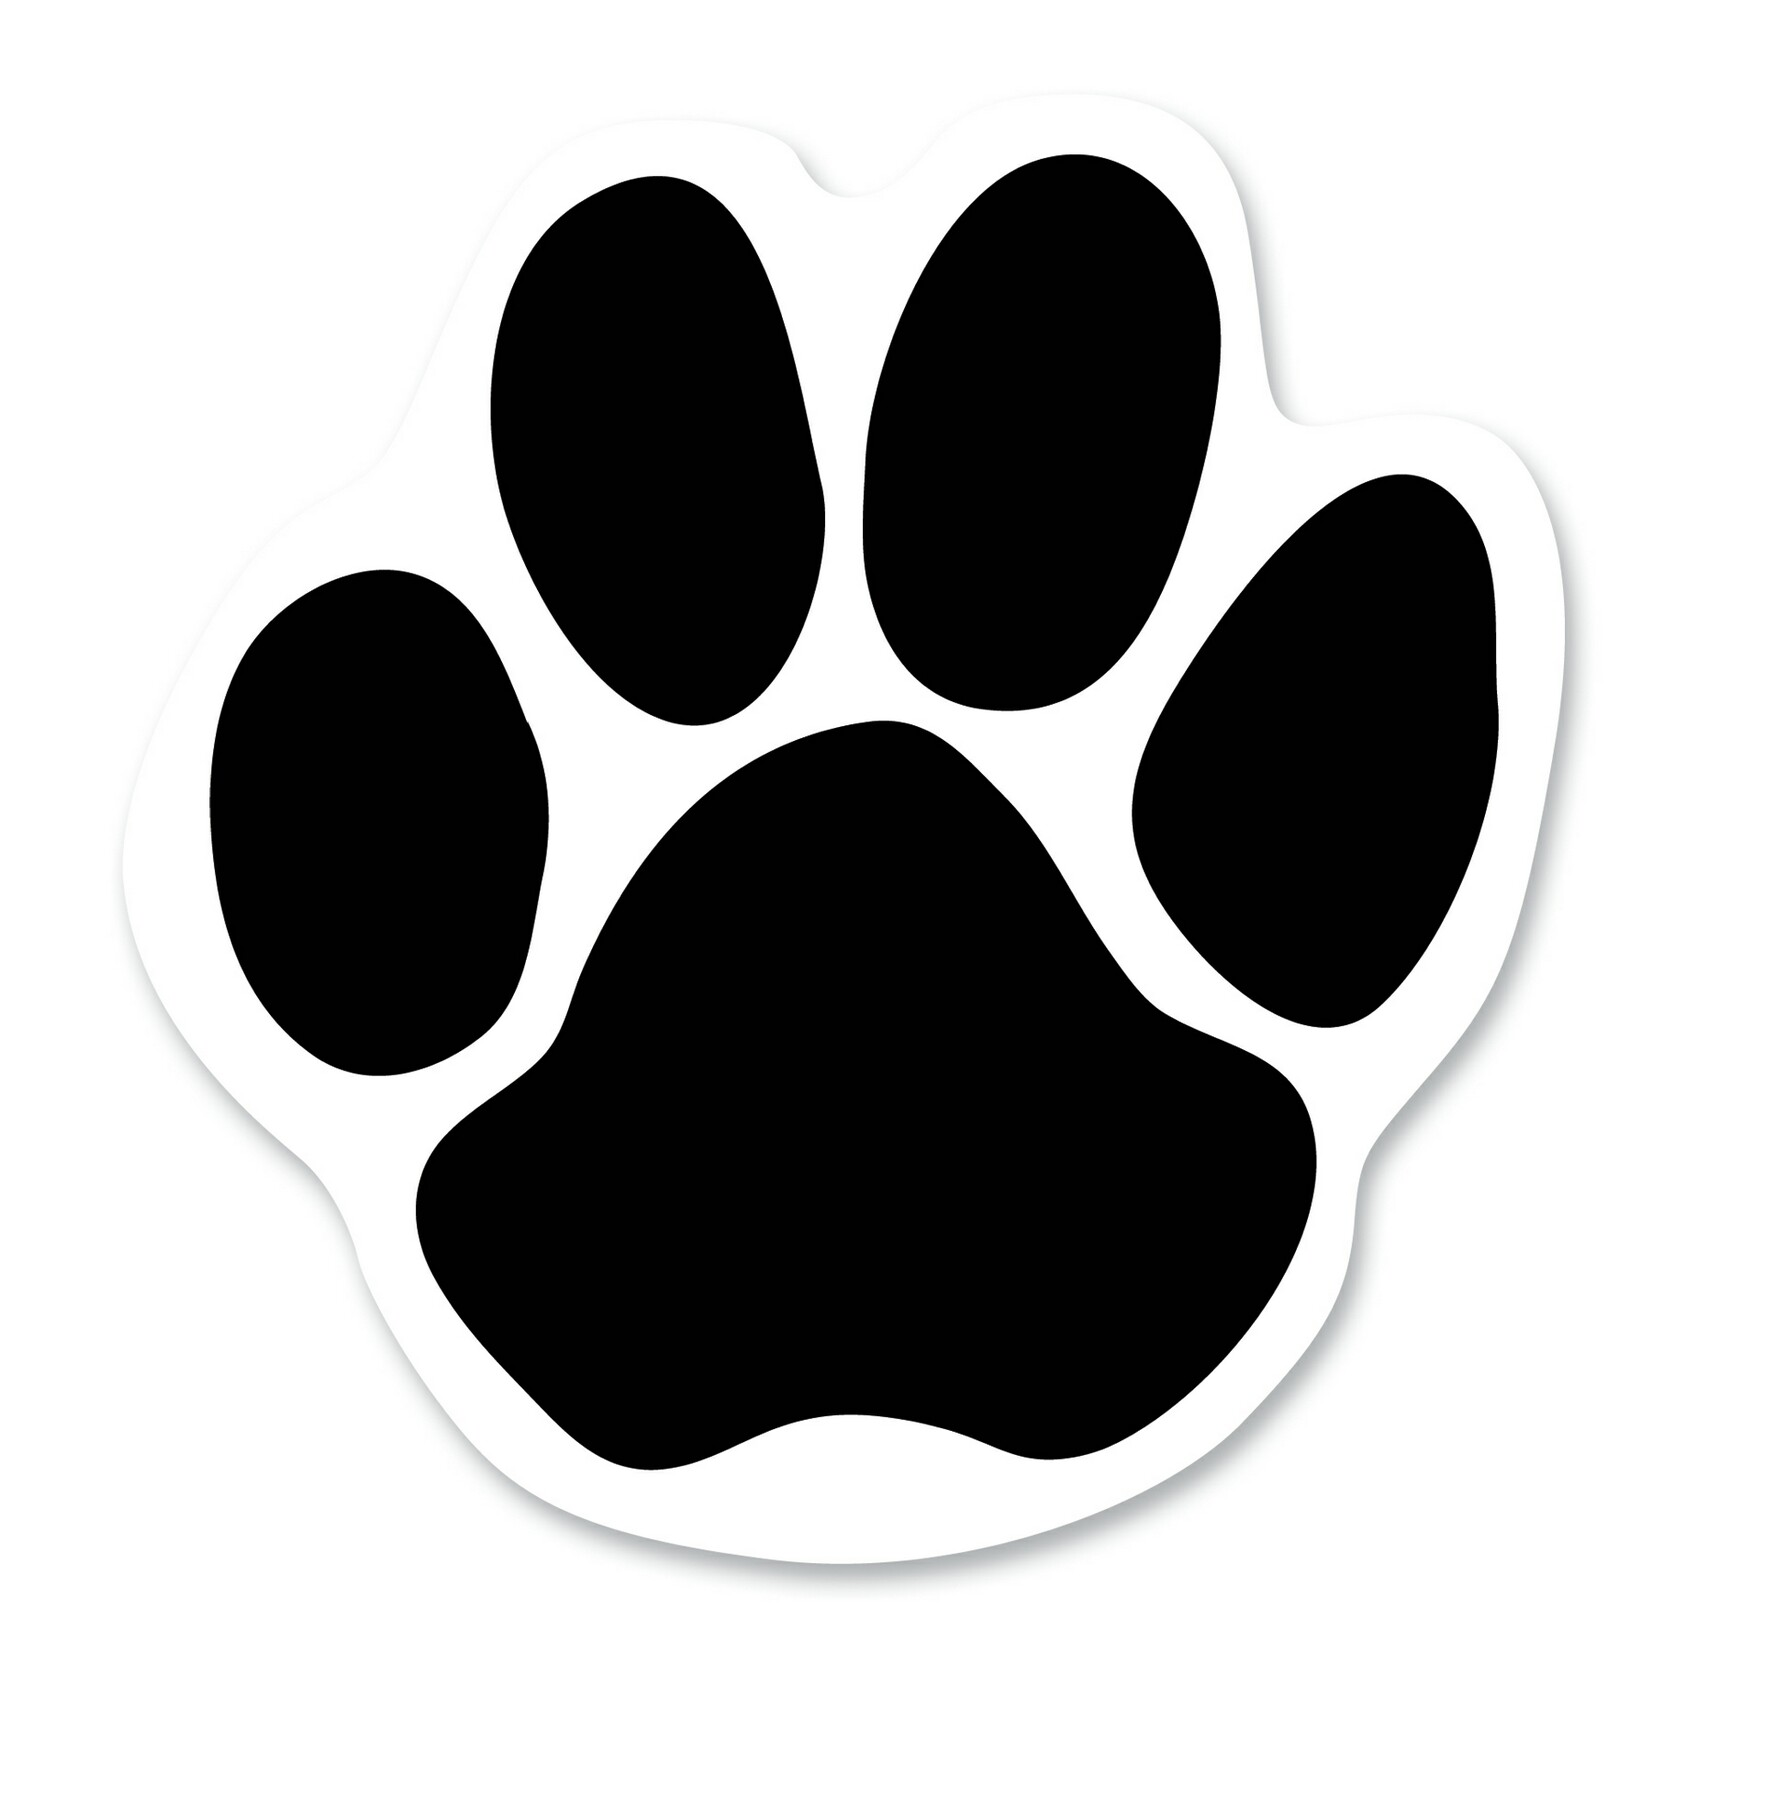 Bear Paw Print Outline - ClipArt Best